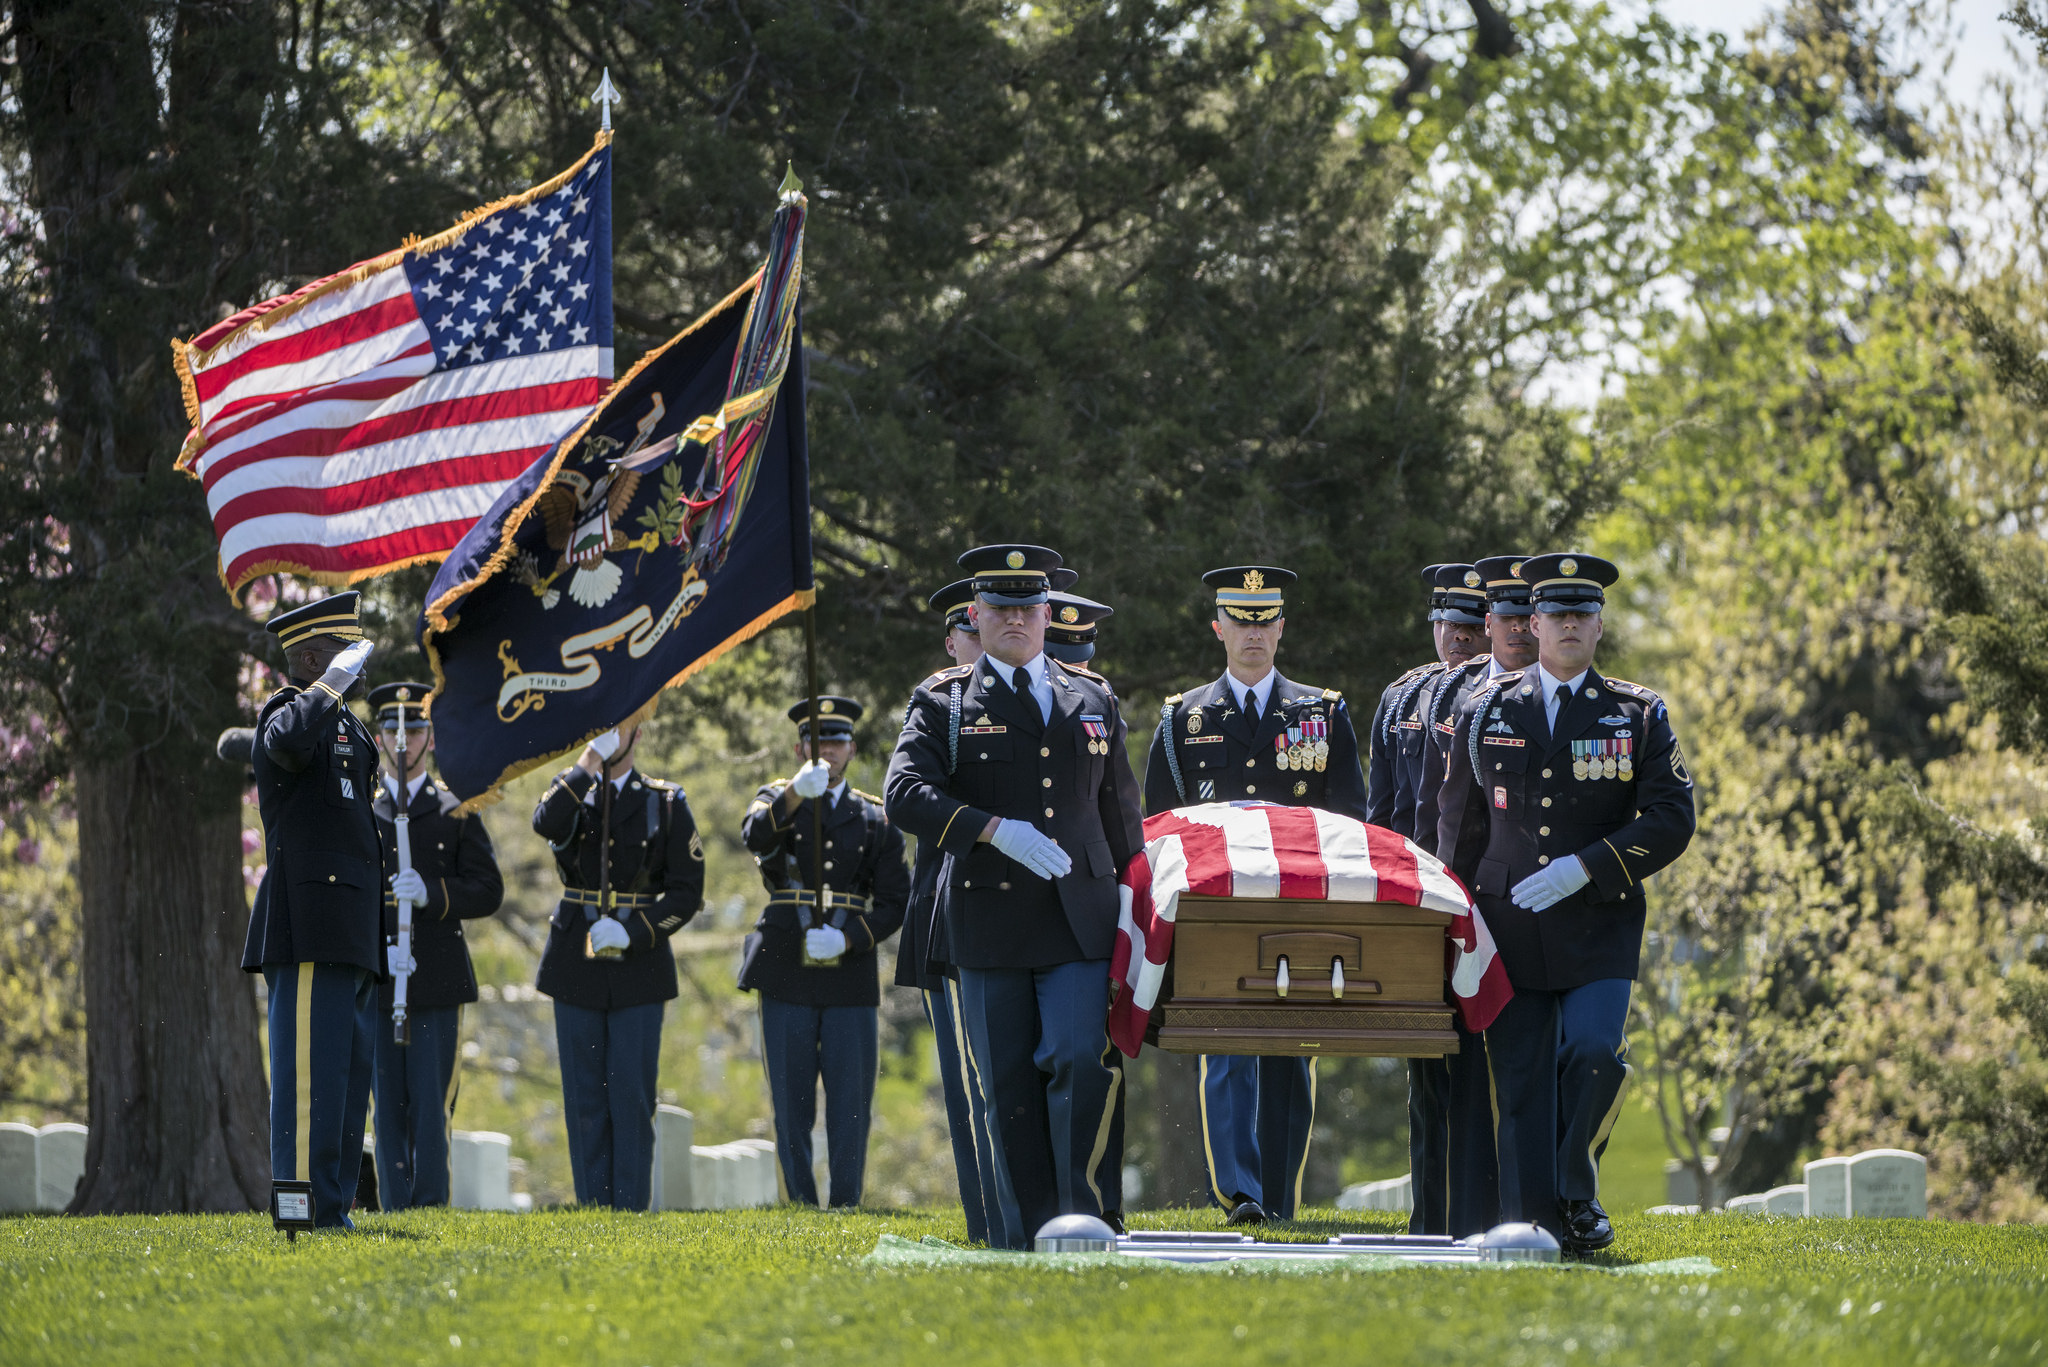 Soldiers in dress uniform carry a flag-draped casket